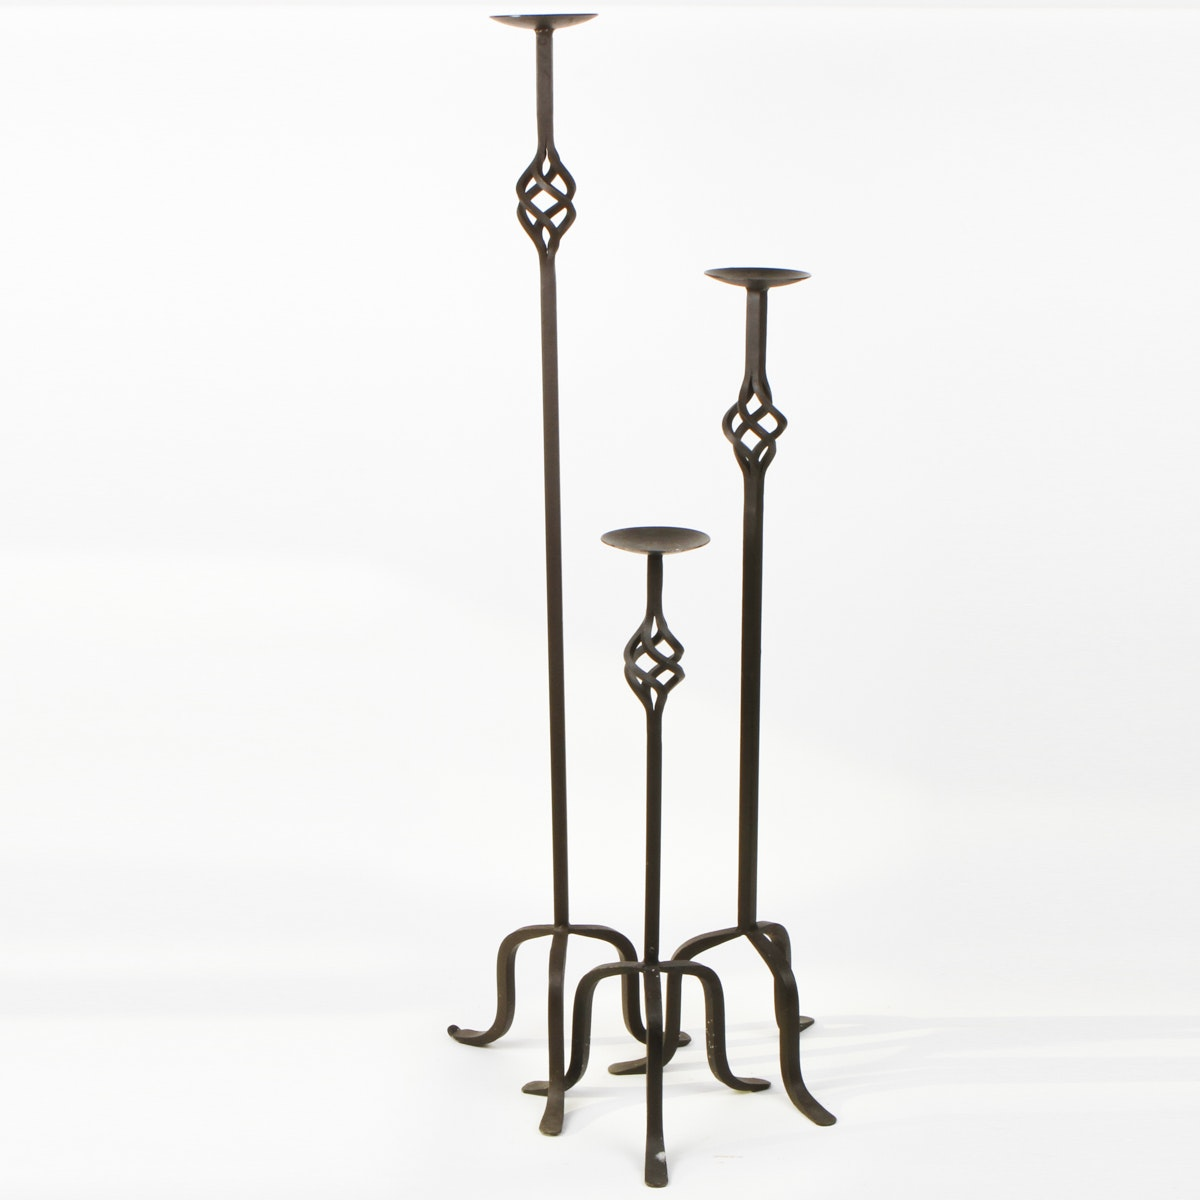 Three Wrought Iron Candlestick Holders